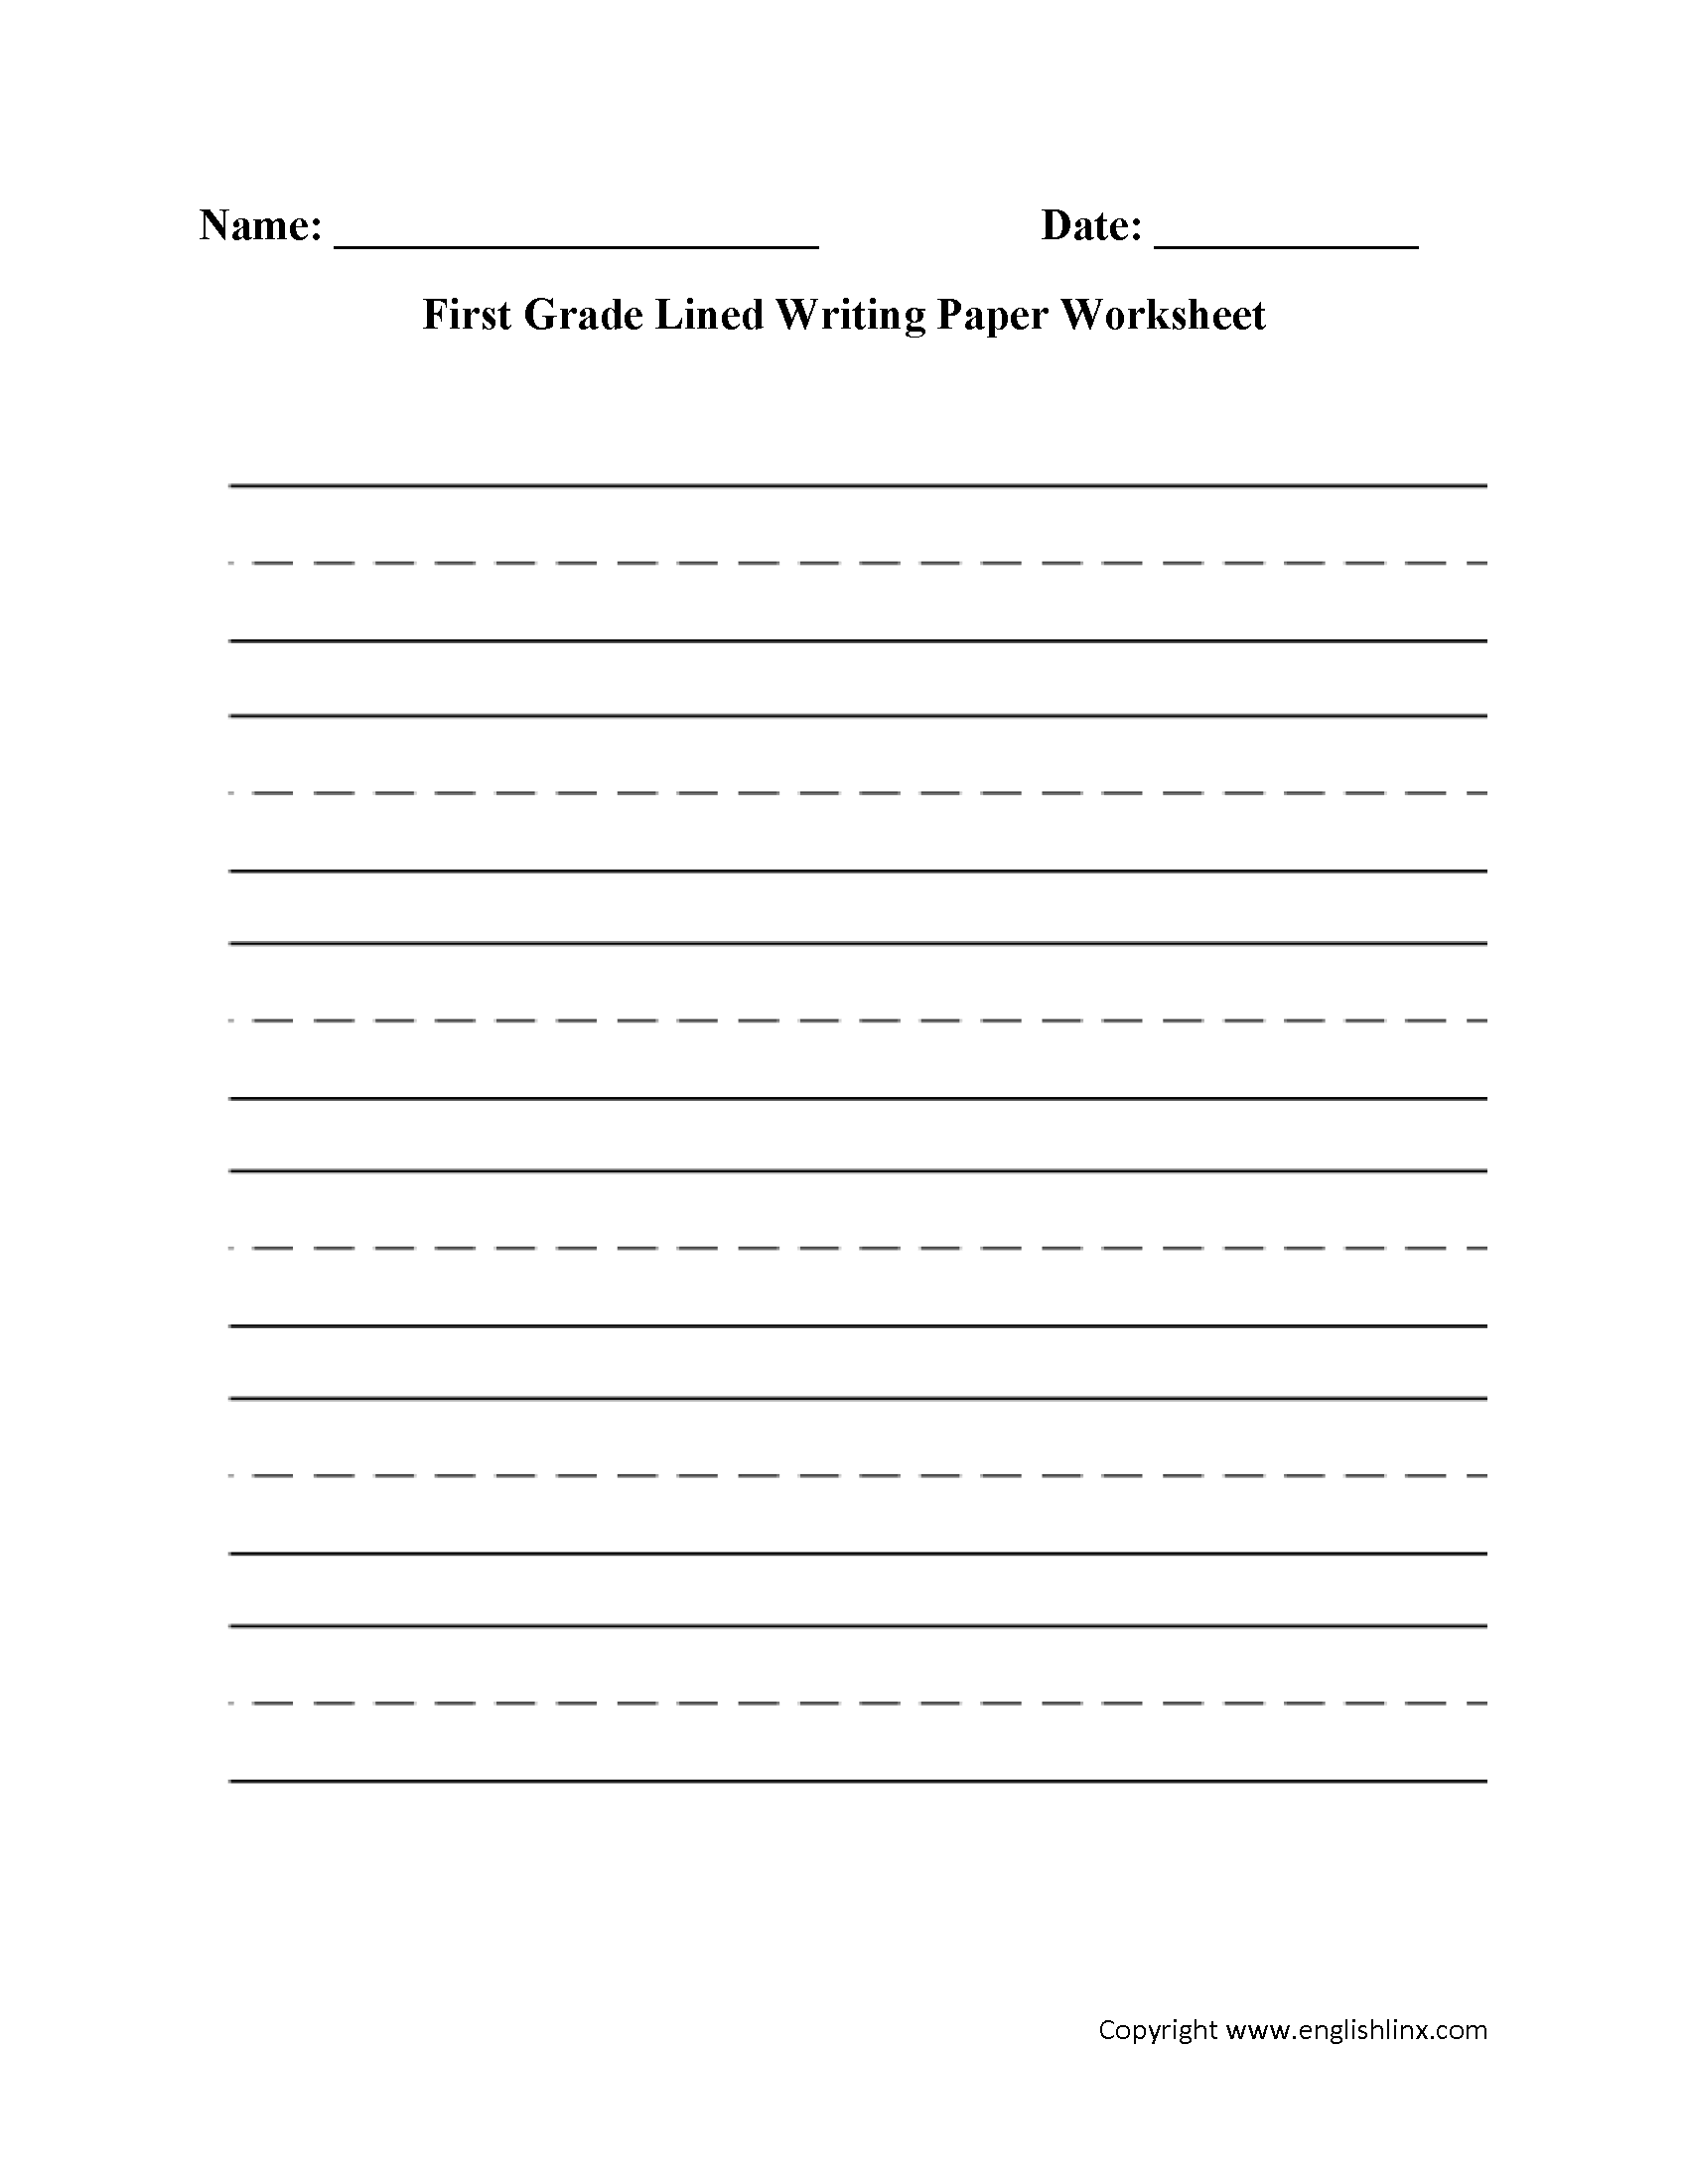 writing for first grade Lined writing paper for first graders free pdf ebook download: lined writing paper for first graders download or read online ebook lined writing paper for first.